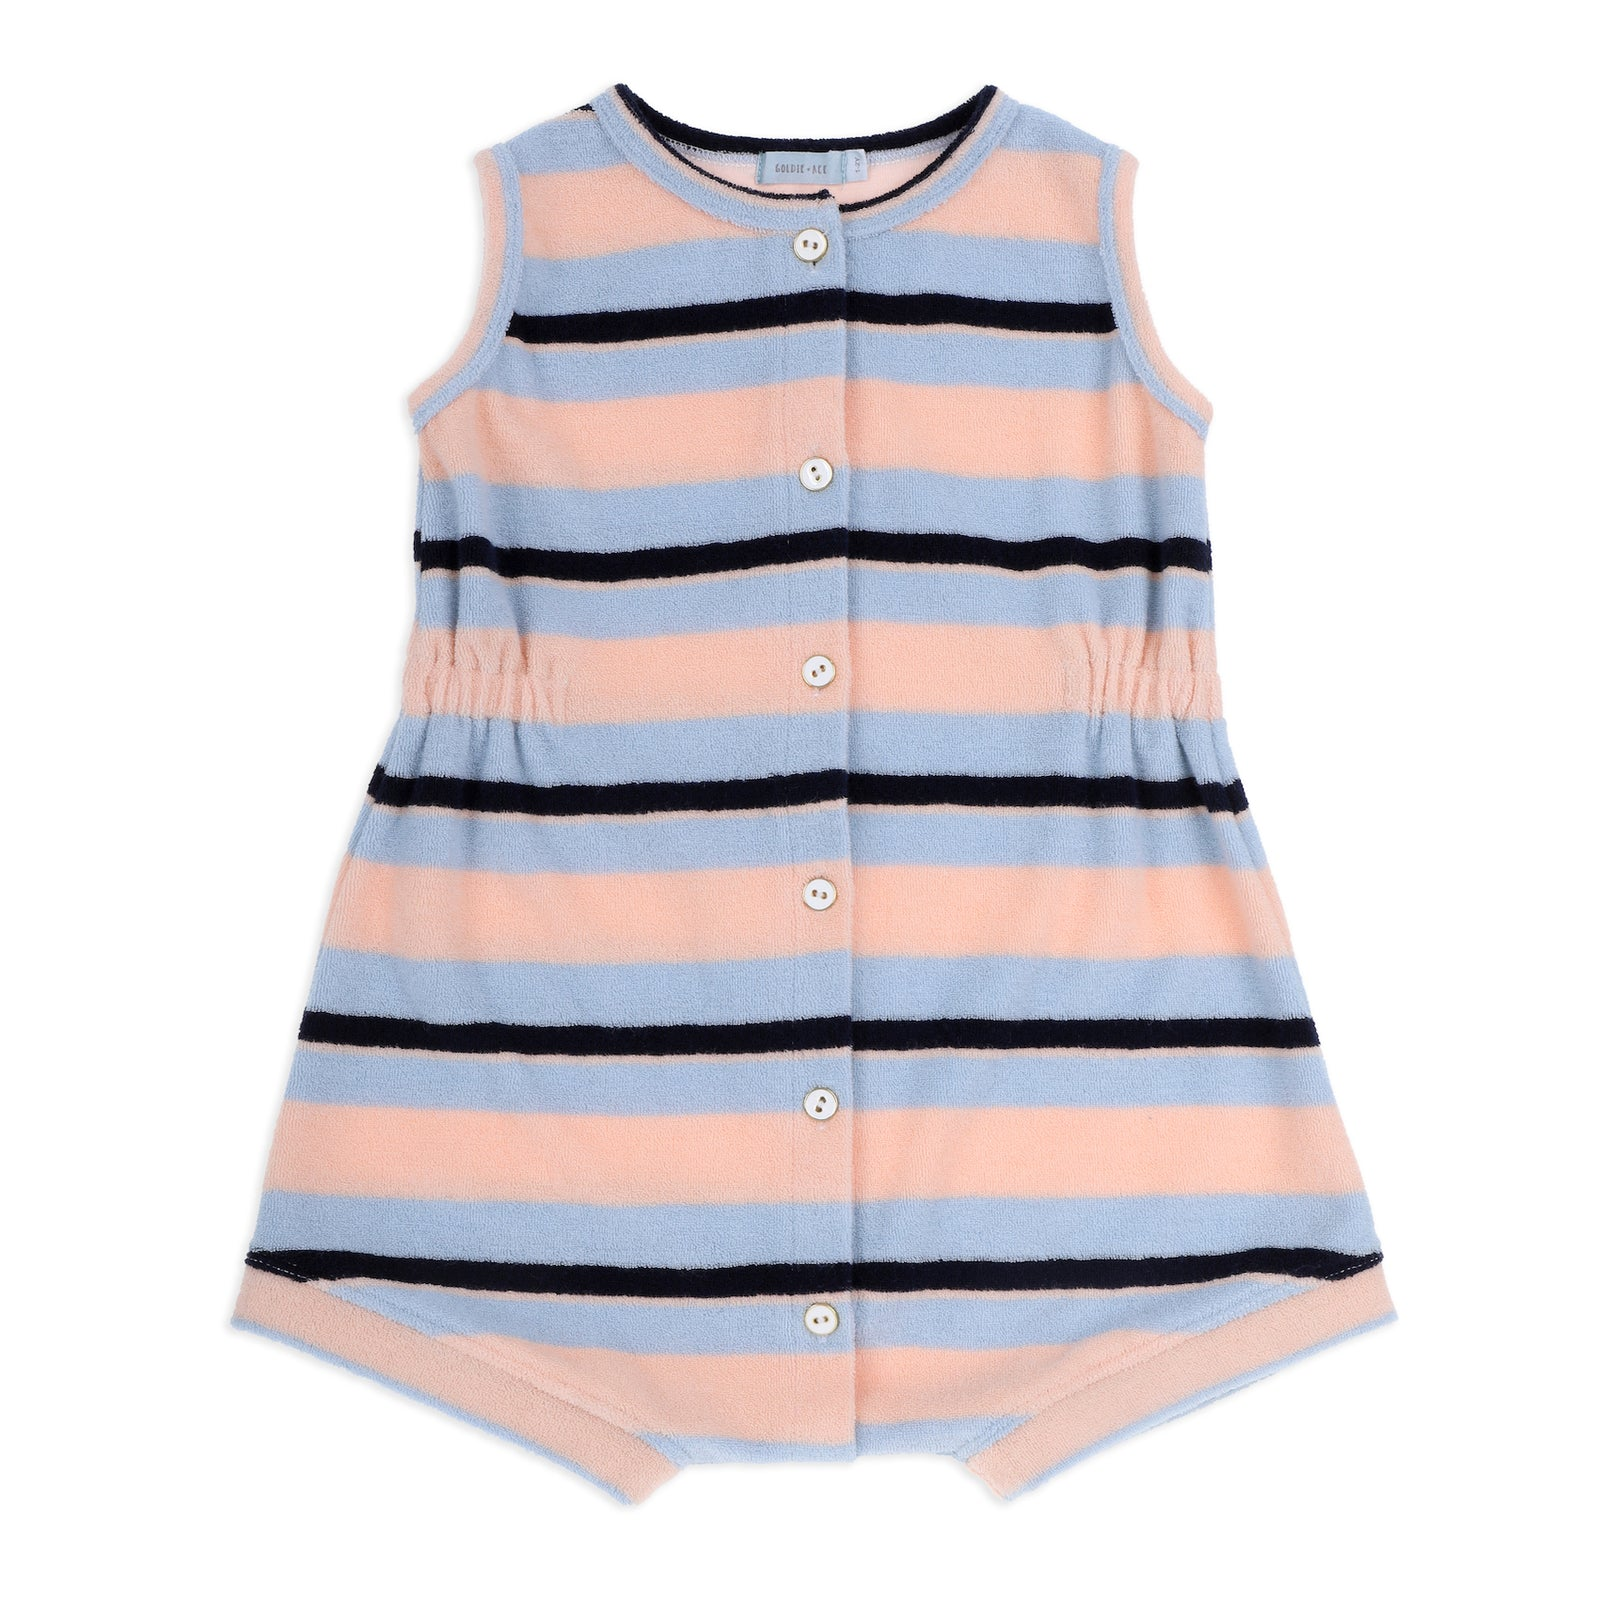 Tony Terry Towelling Romper Blue Peach Stripe